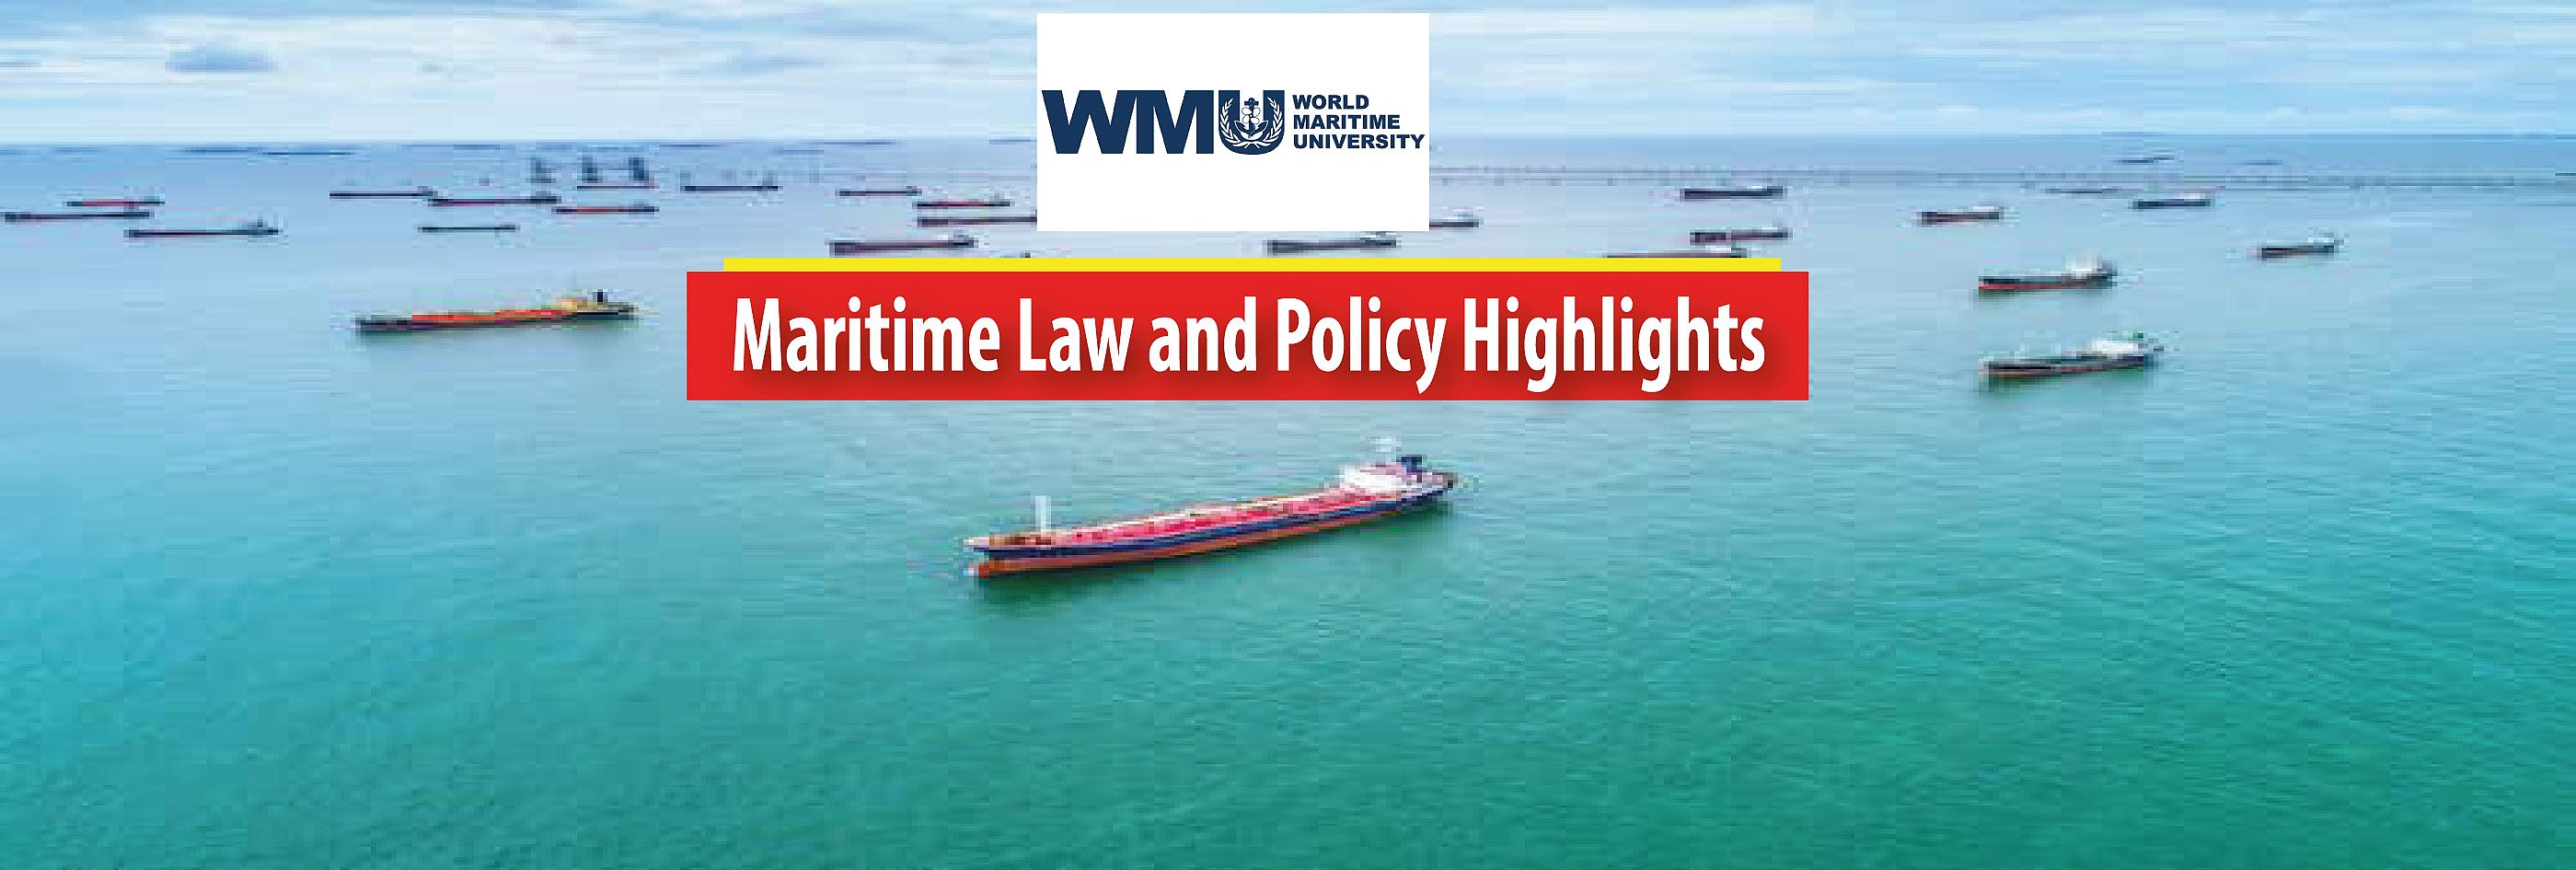 WMU WEBINAR COVID-19 AND SHIPPING: Maritime Law and Policy